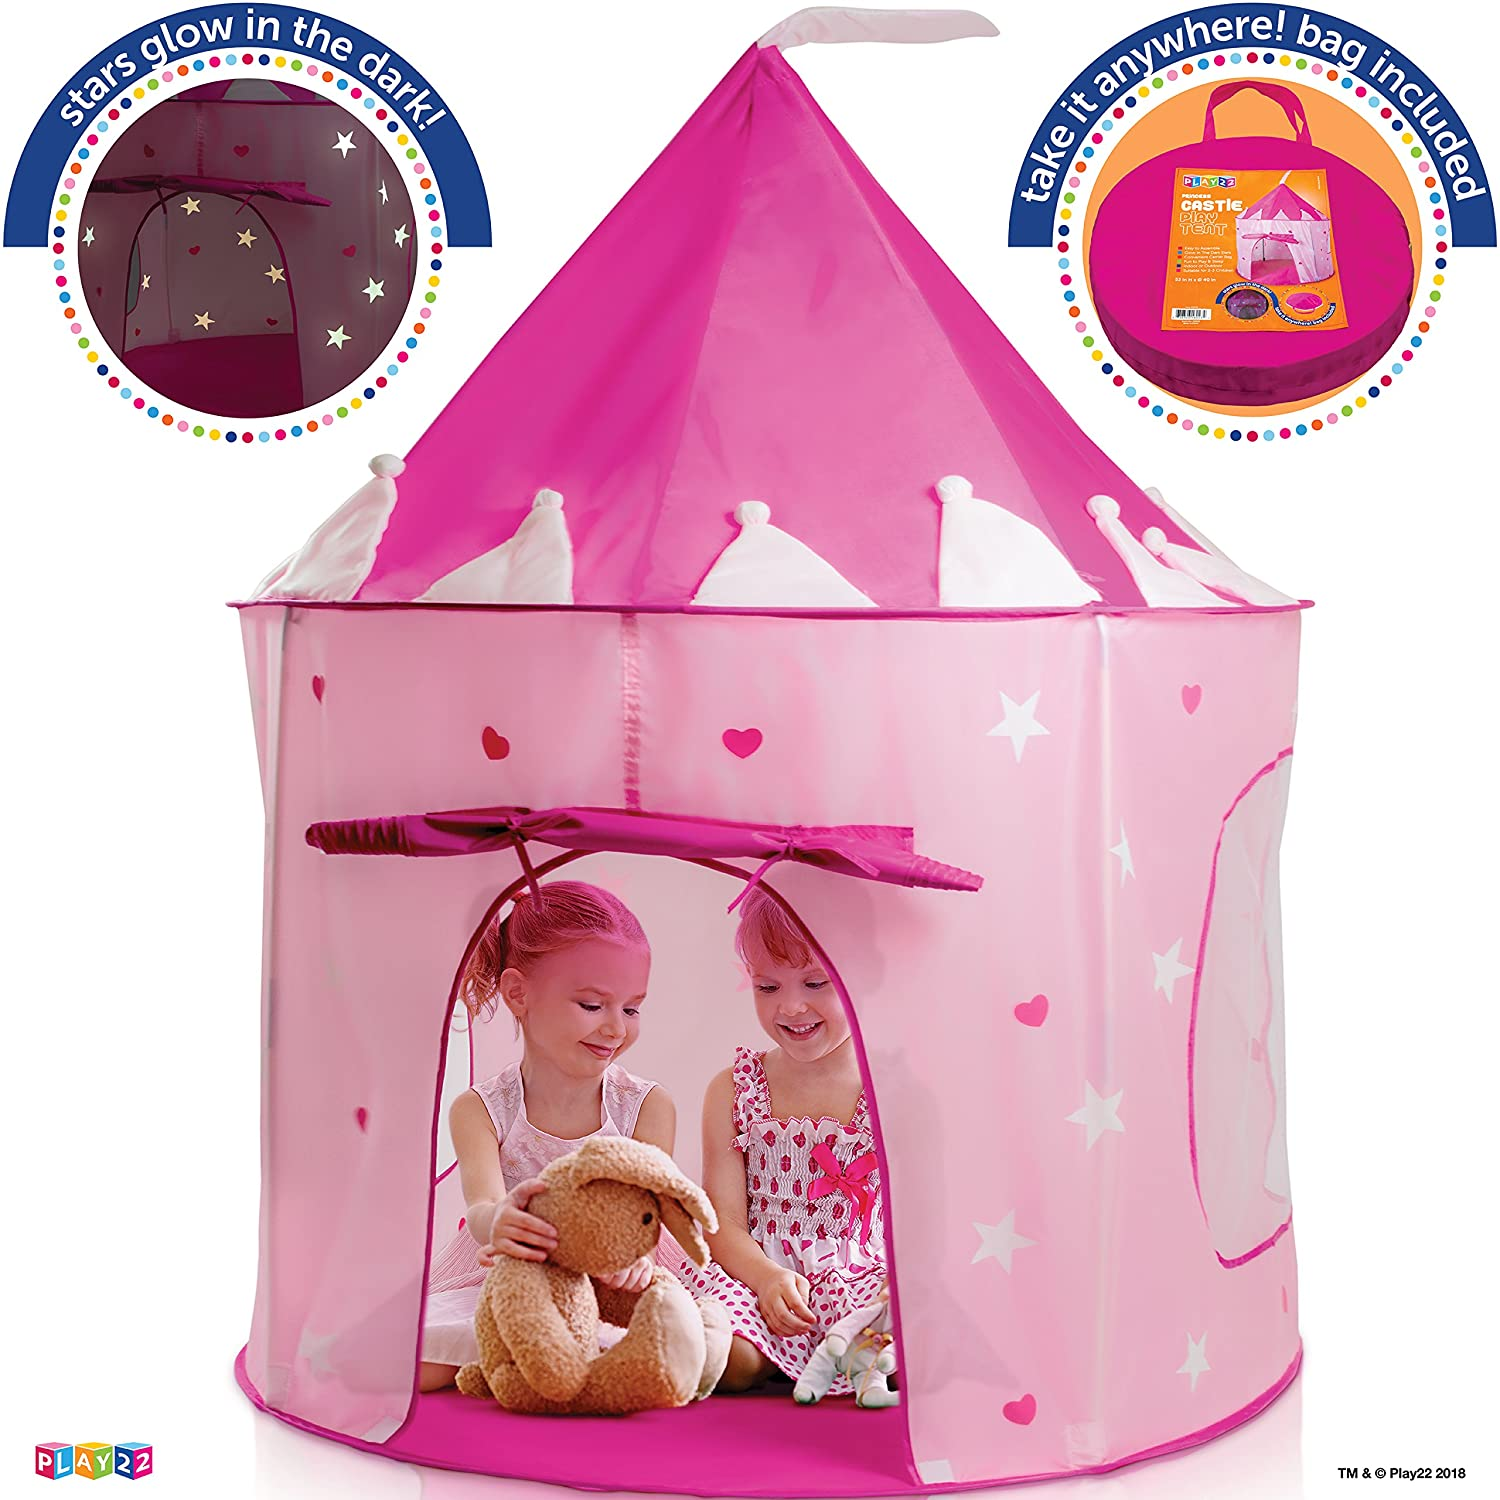 Play22 Play Tent Princess Castle Pink  Kids Tent Features Glow in The Dark Stars  Portable Kids Play Tent  Kids Pop Up Tent Foldable Into A Carrying Bag  Indoor and Outdoor Use  Original